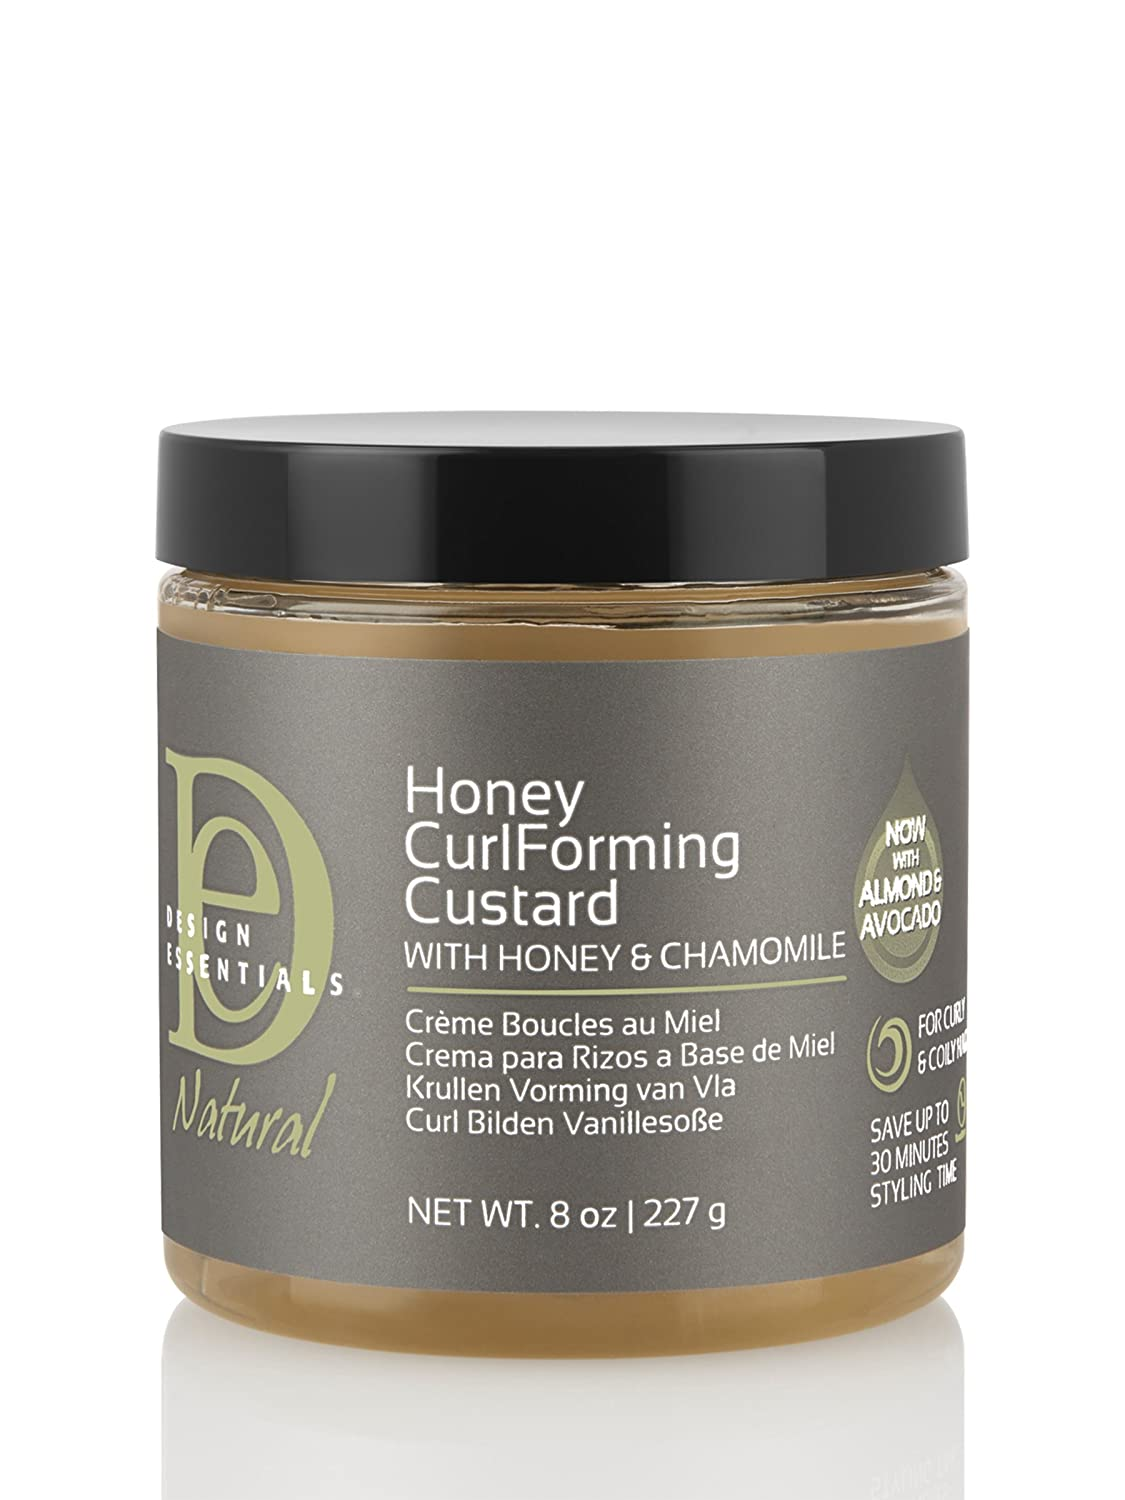 Design Essentials Natural Honey Curl Forming Custard infused with Almond, Avocado, Honey & Chamomile for Intense Shine, Medium Hold and Definition-8oz.